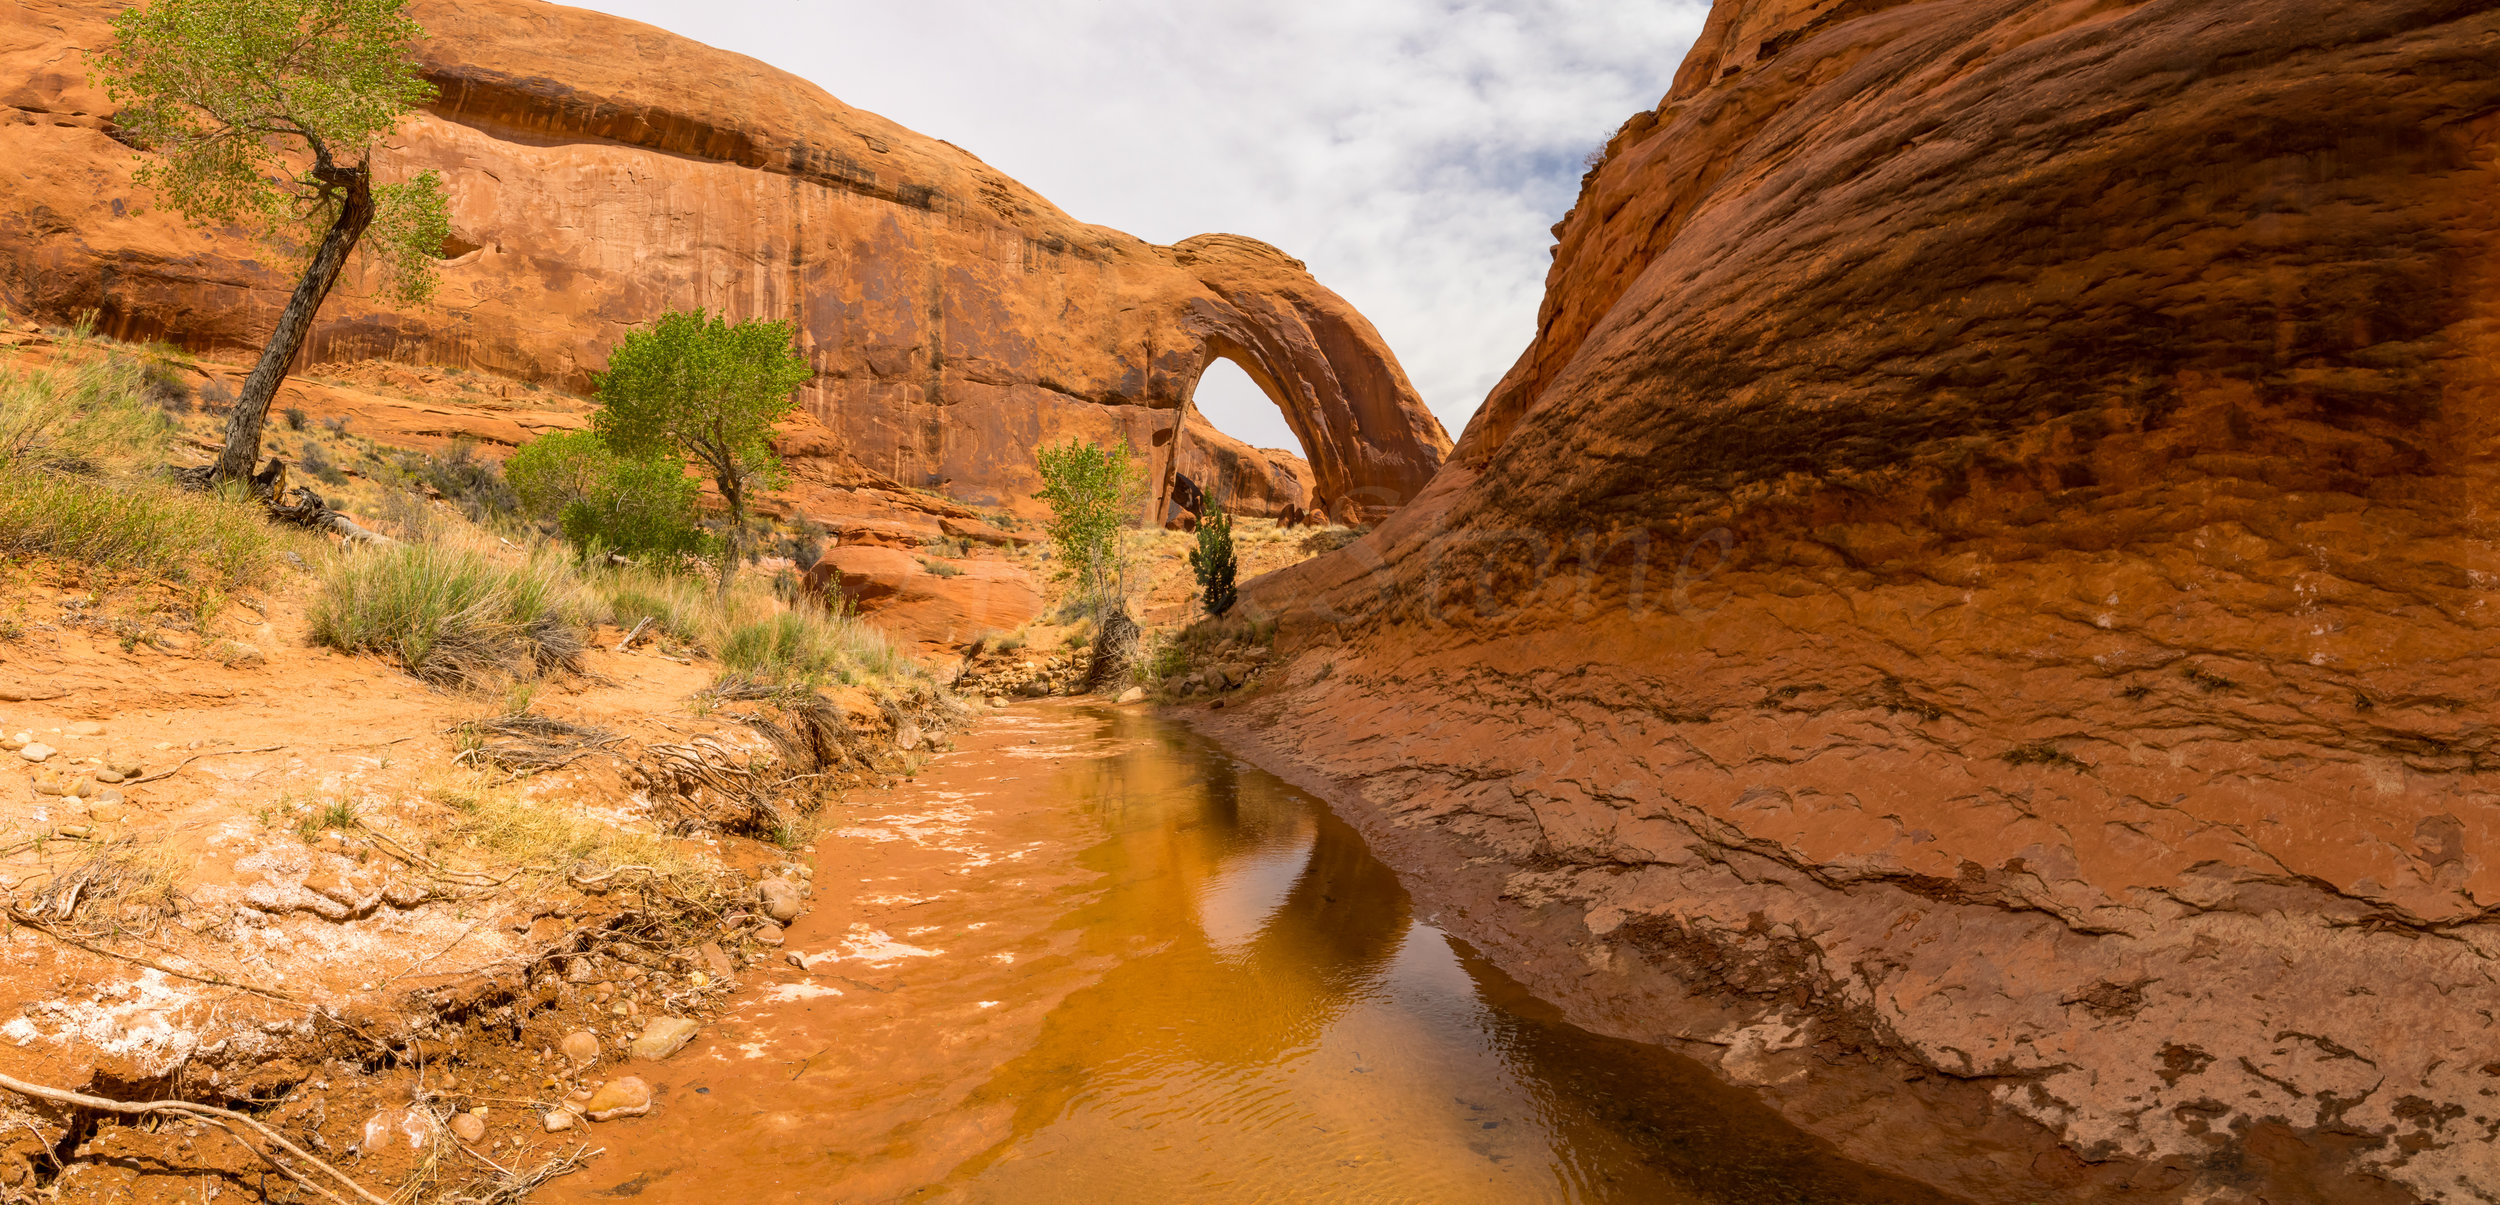 Bow Arch, Image # 2395